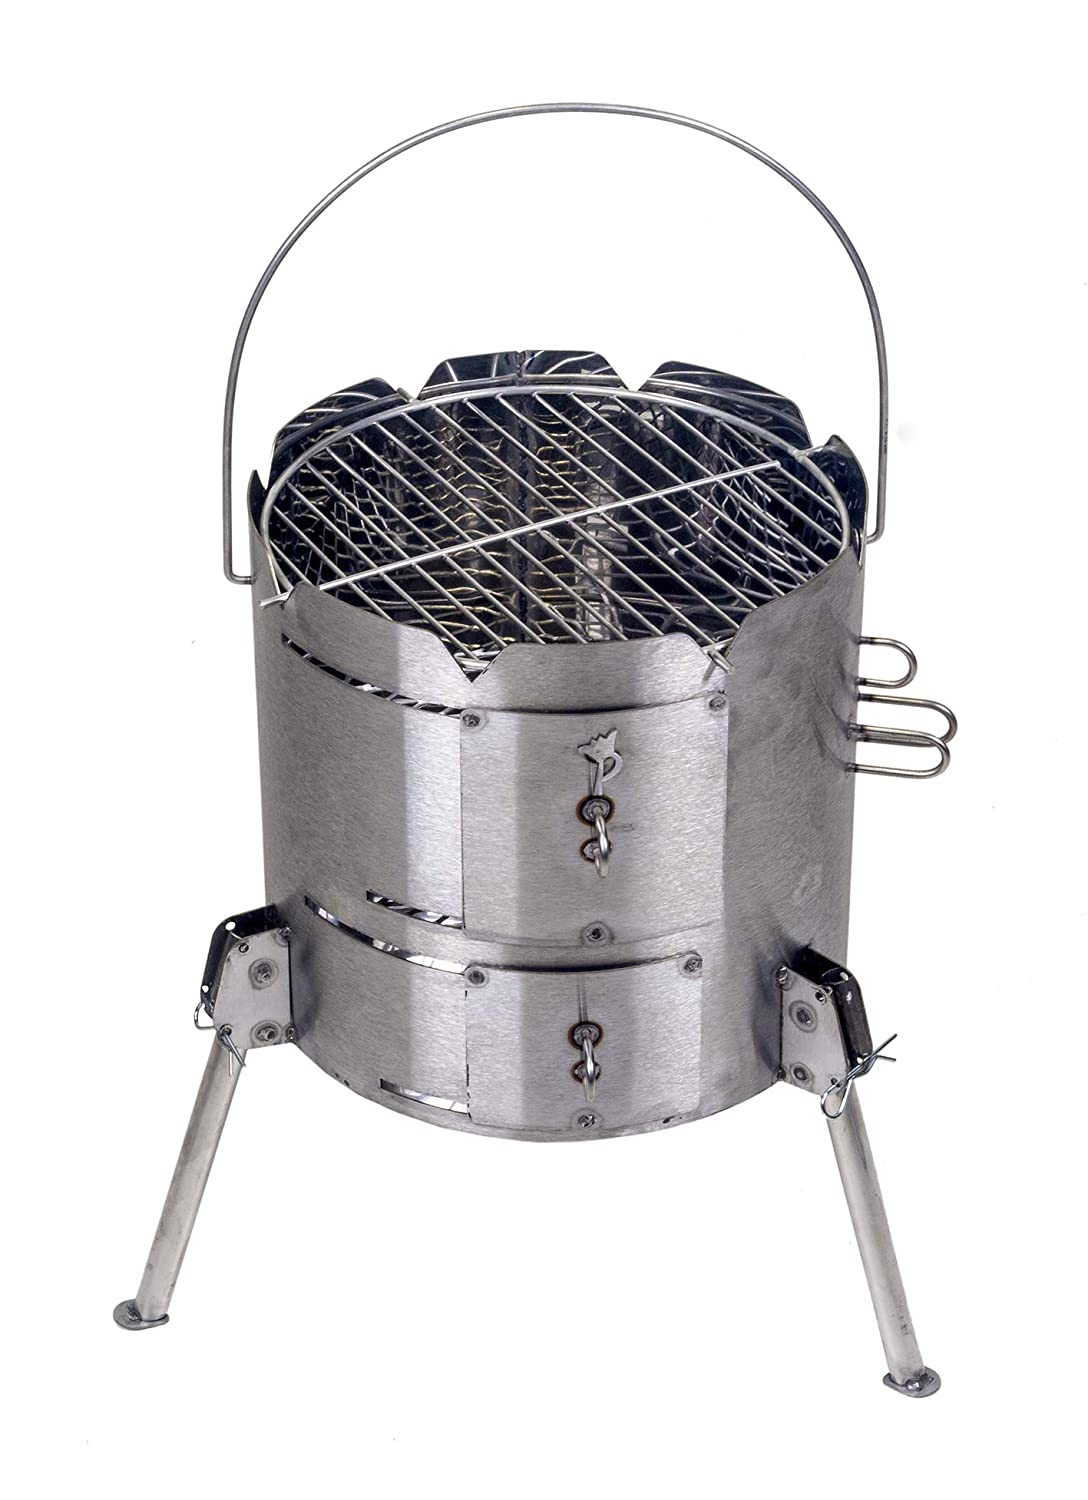 King Potjie Potjie for Oven Pot / Dutch Oven, etc. as well as barbecues 01-00007-001-28